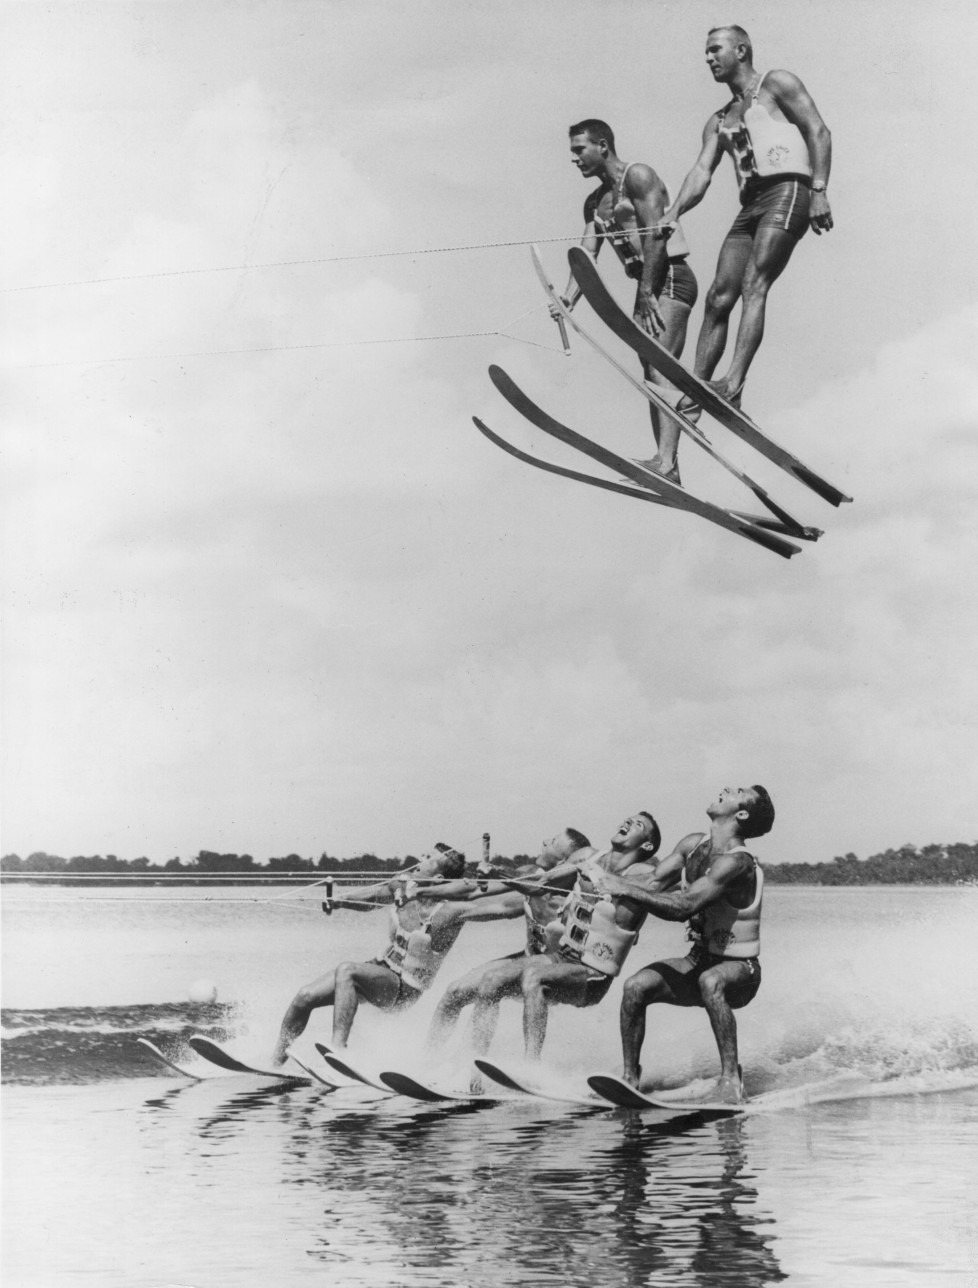 25th November 1965: A high speed water-skiing team demonstrate advanced techniques of a stunt named 'flying high and dry', at Cypress Gardens, Florida. (Photo by Alan Band/Fox Photos/Getty Images)